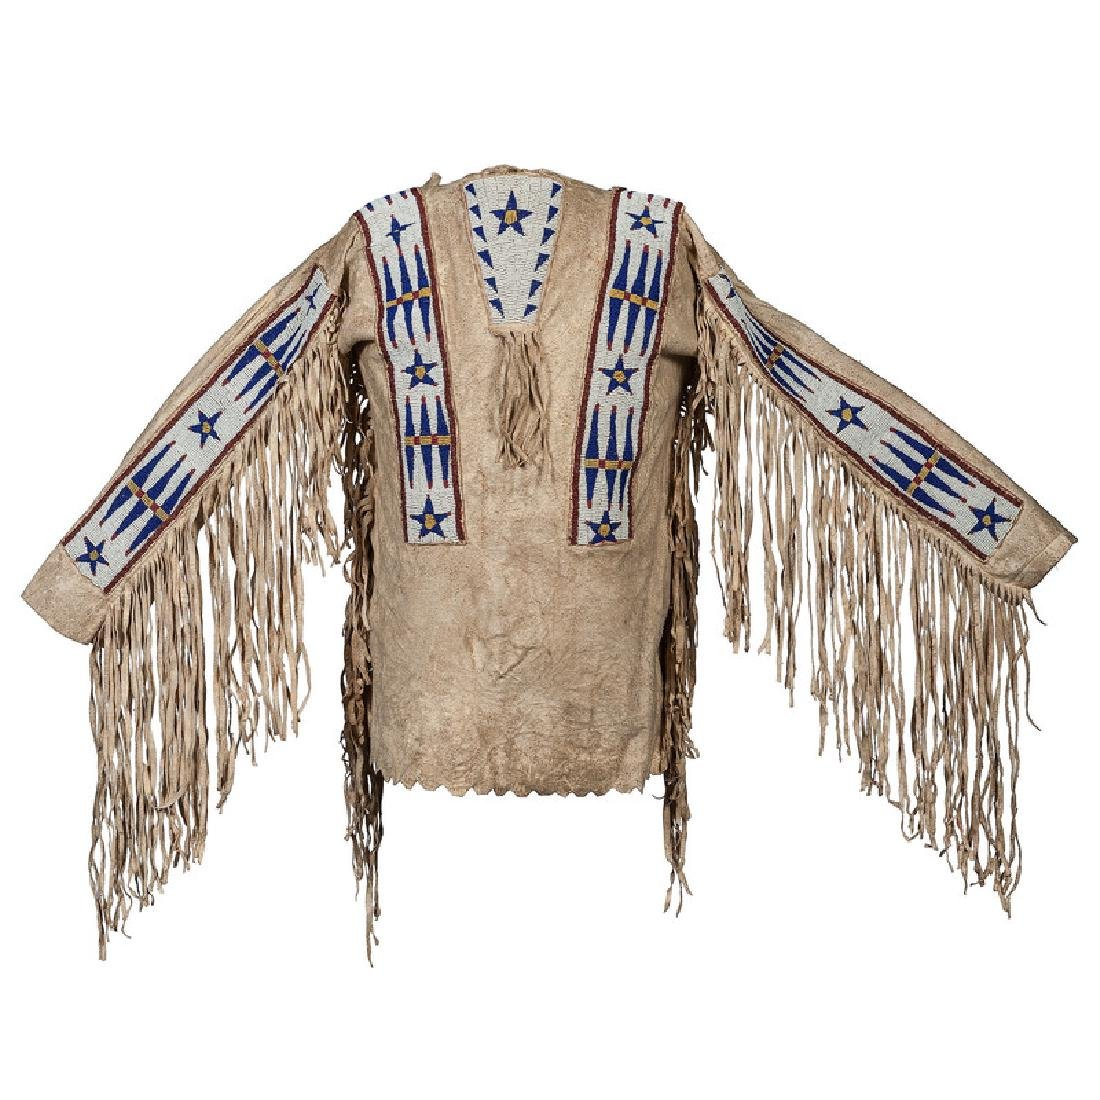 Sioux Boy's Beaded Hide War Shirt, Collected by Gustav